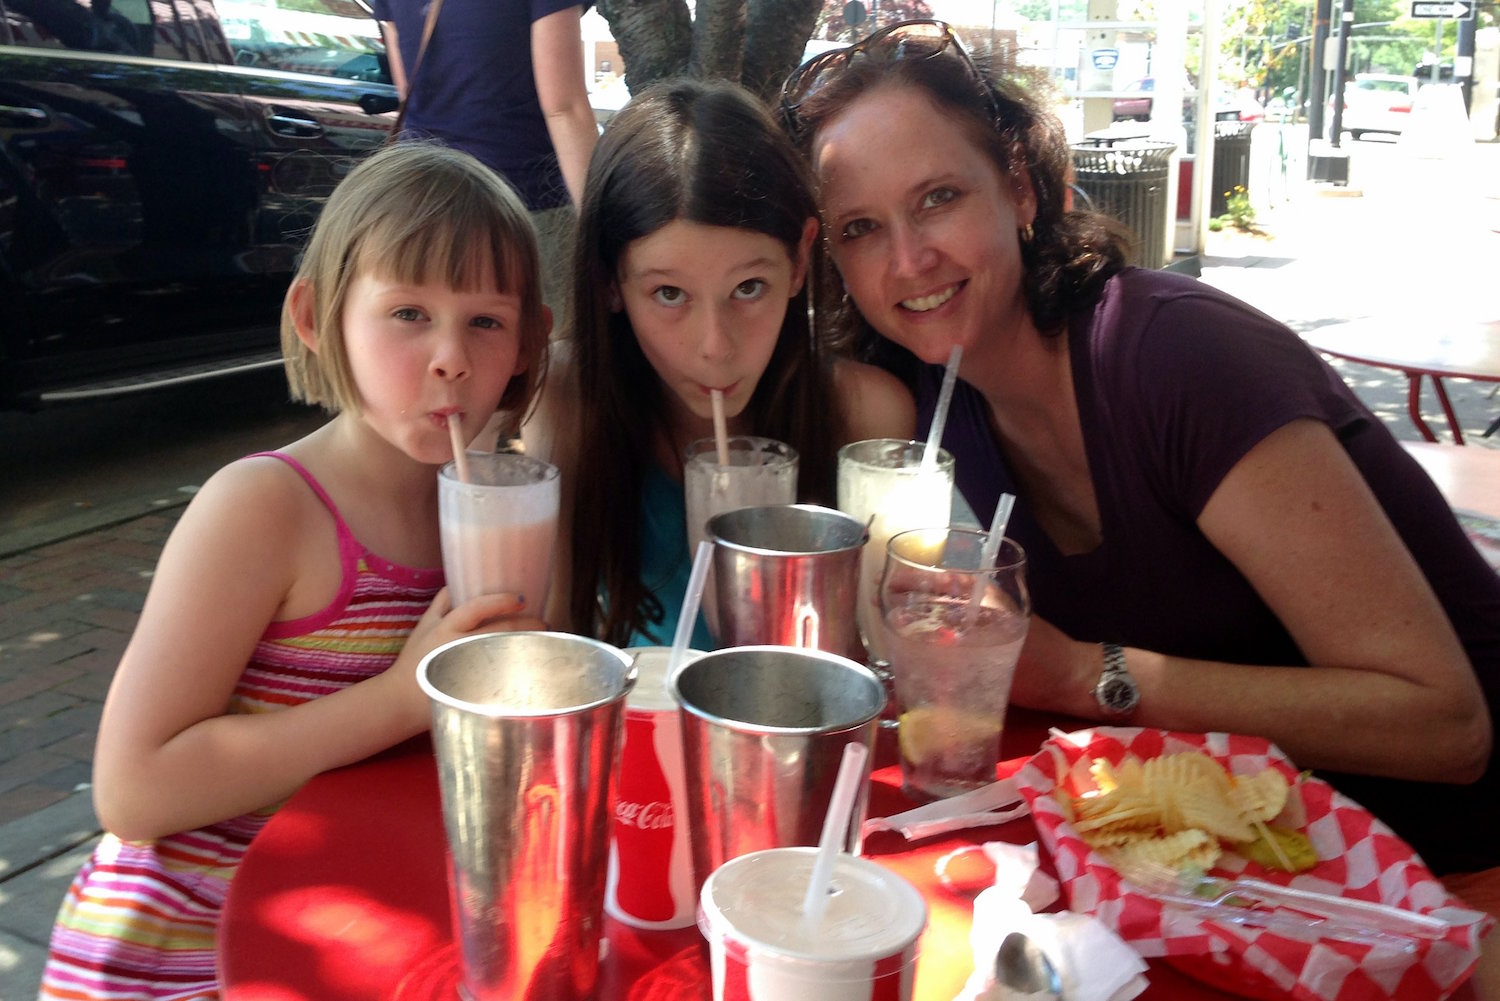 Enjoying milkshakes at Rocky's Grill & Soda Shop